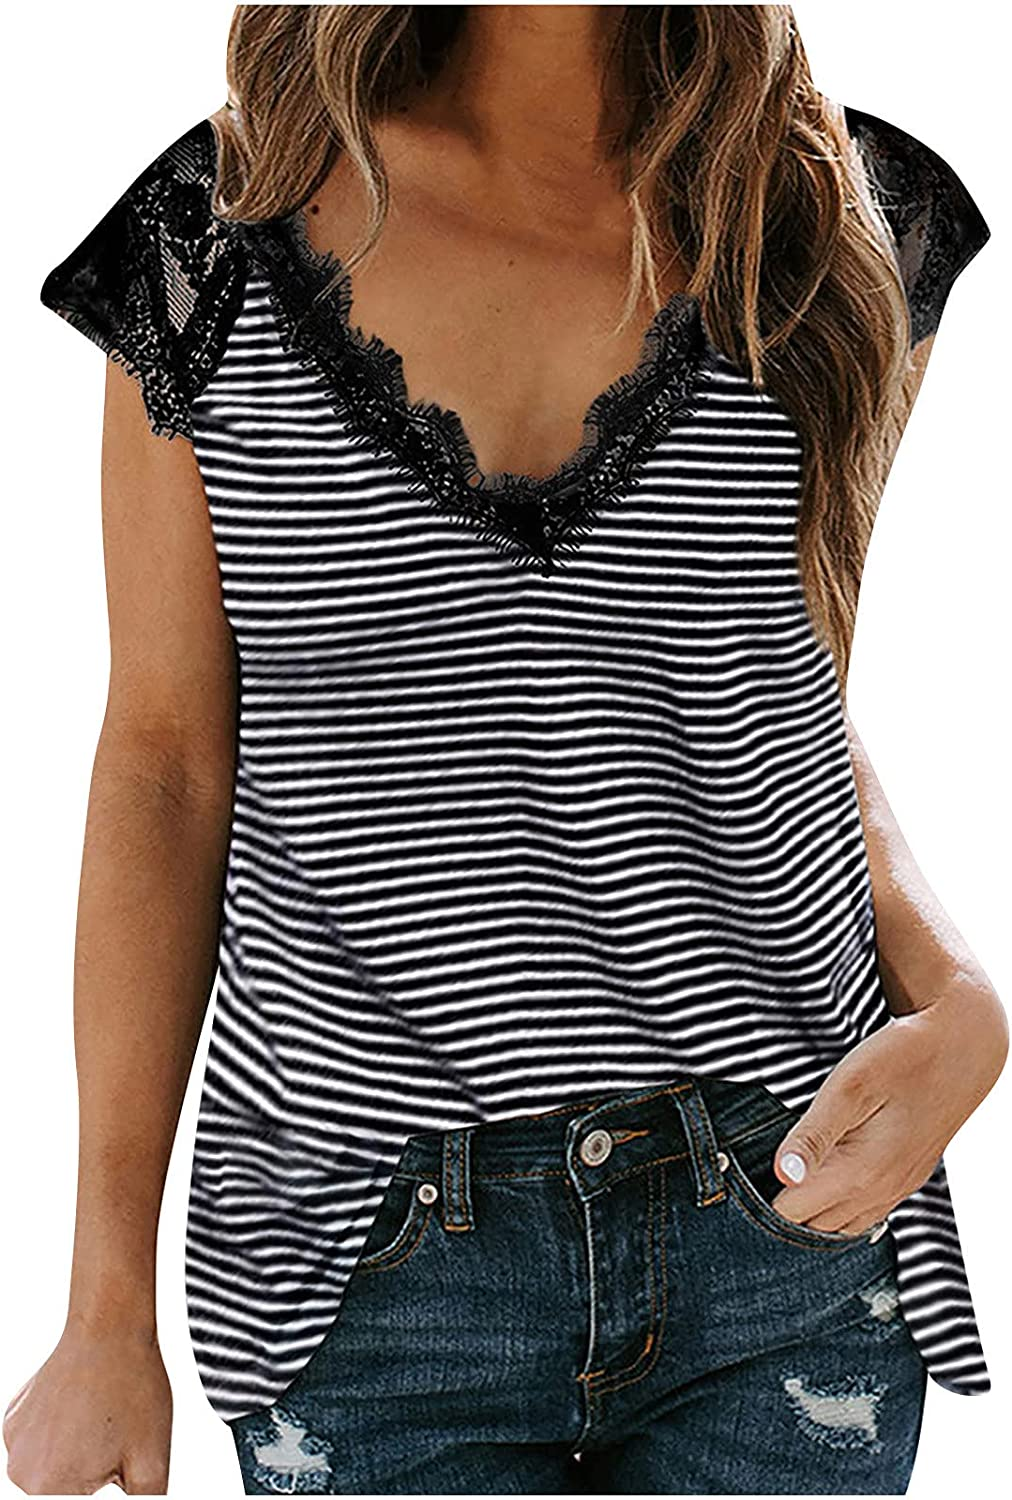 Womens Summer Tops Printing V-Neck Vest Tampa Mall Sl Sexy 67% OFF of fixed price Lace